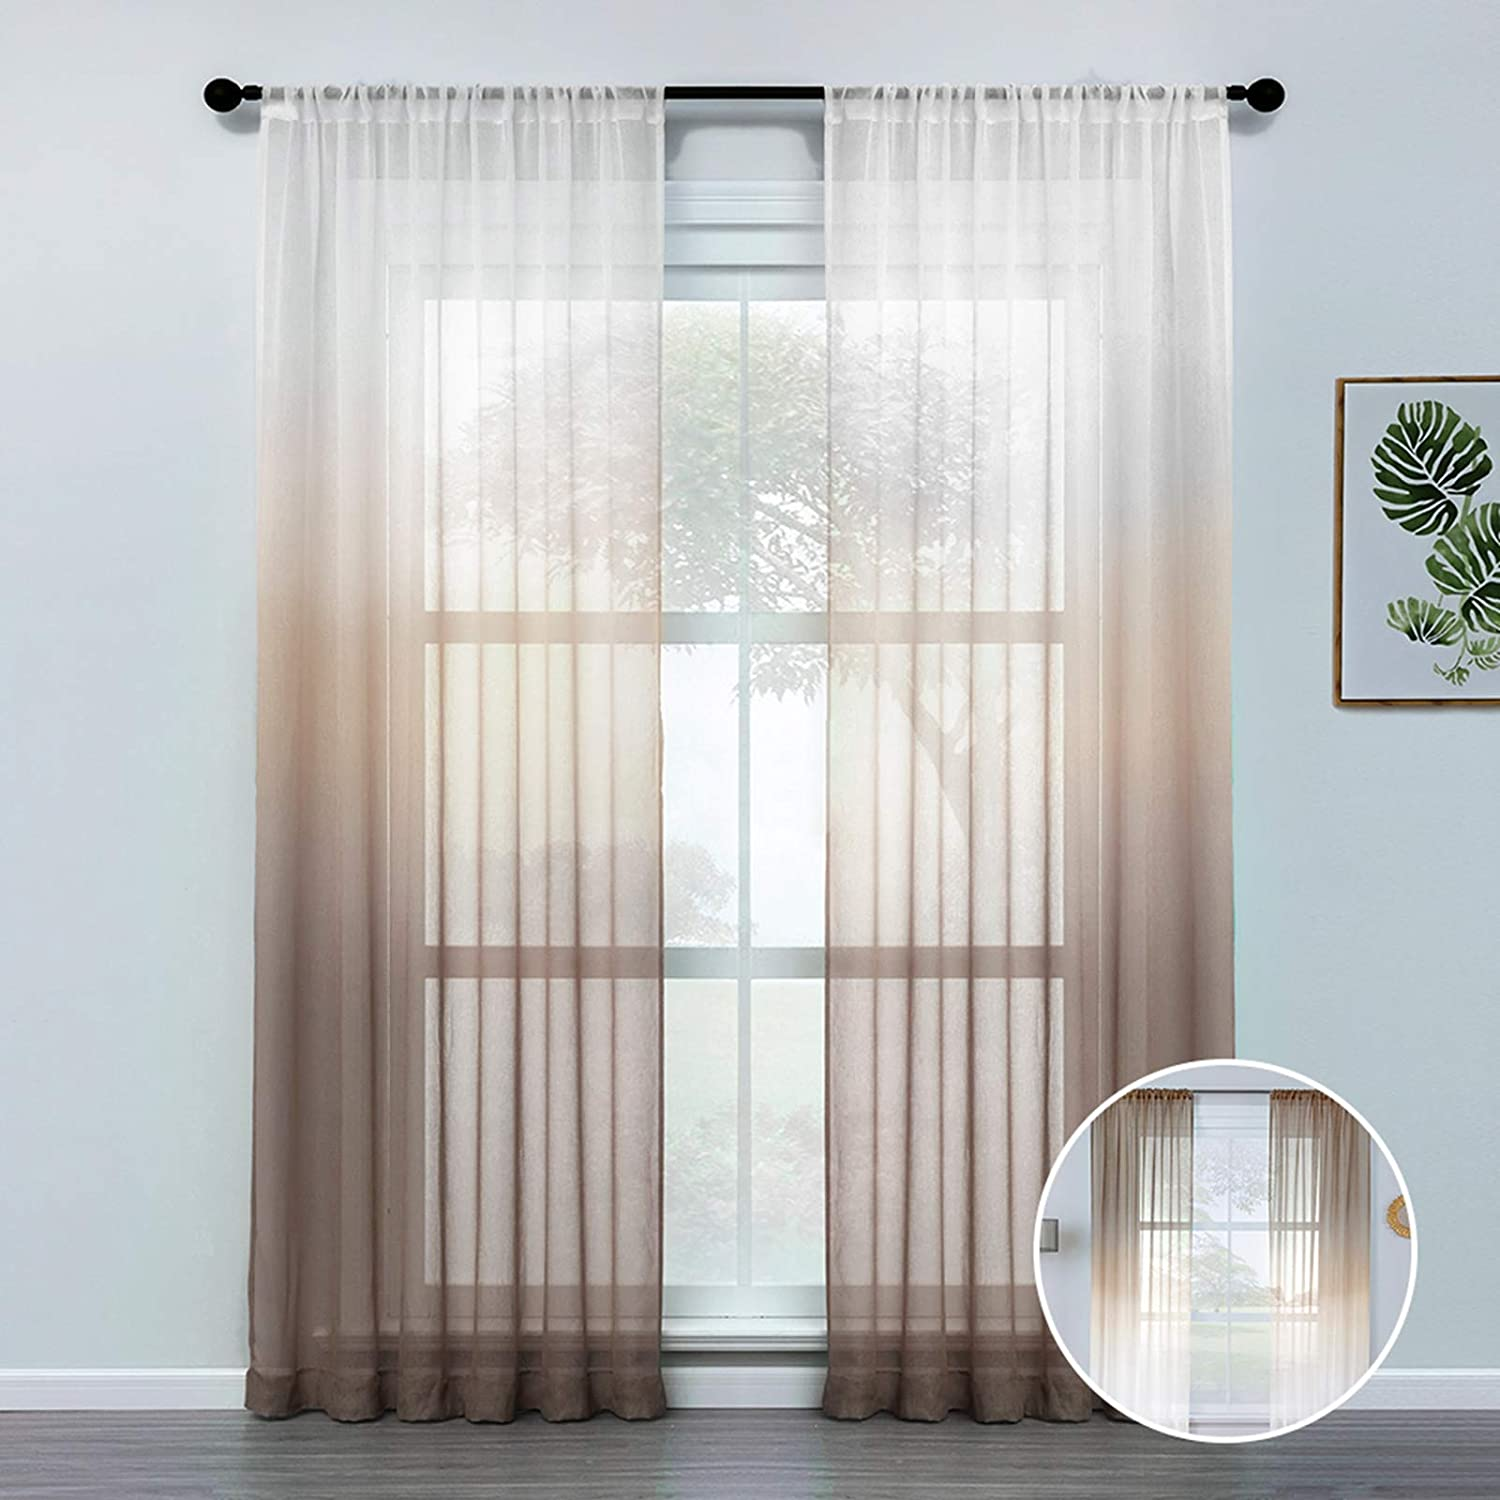 CUTEWIND Ombre Sheer Curtains 72 Inches Long for Living Room Bedroom Rod Pocket Light Filtering Voile Coffee Brown Sheers Drapes Semi Sheer Curtain Panels (2 Panels,Coffee Brown Gradient,54×72 inch)